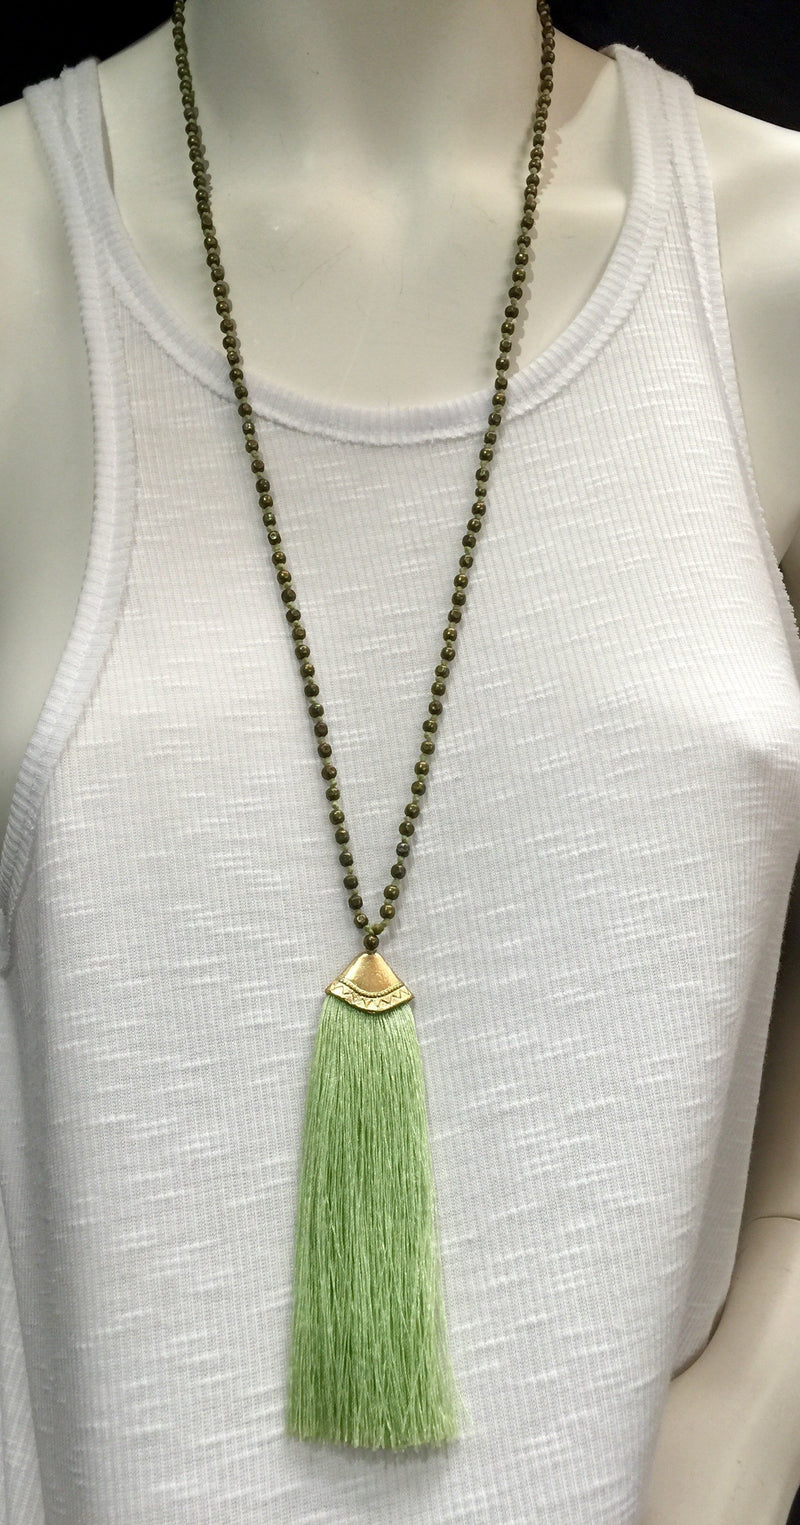 Brass Beads Tassel Necklace